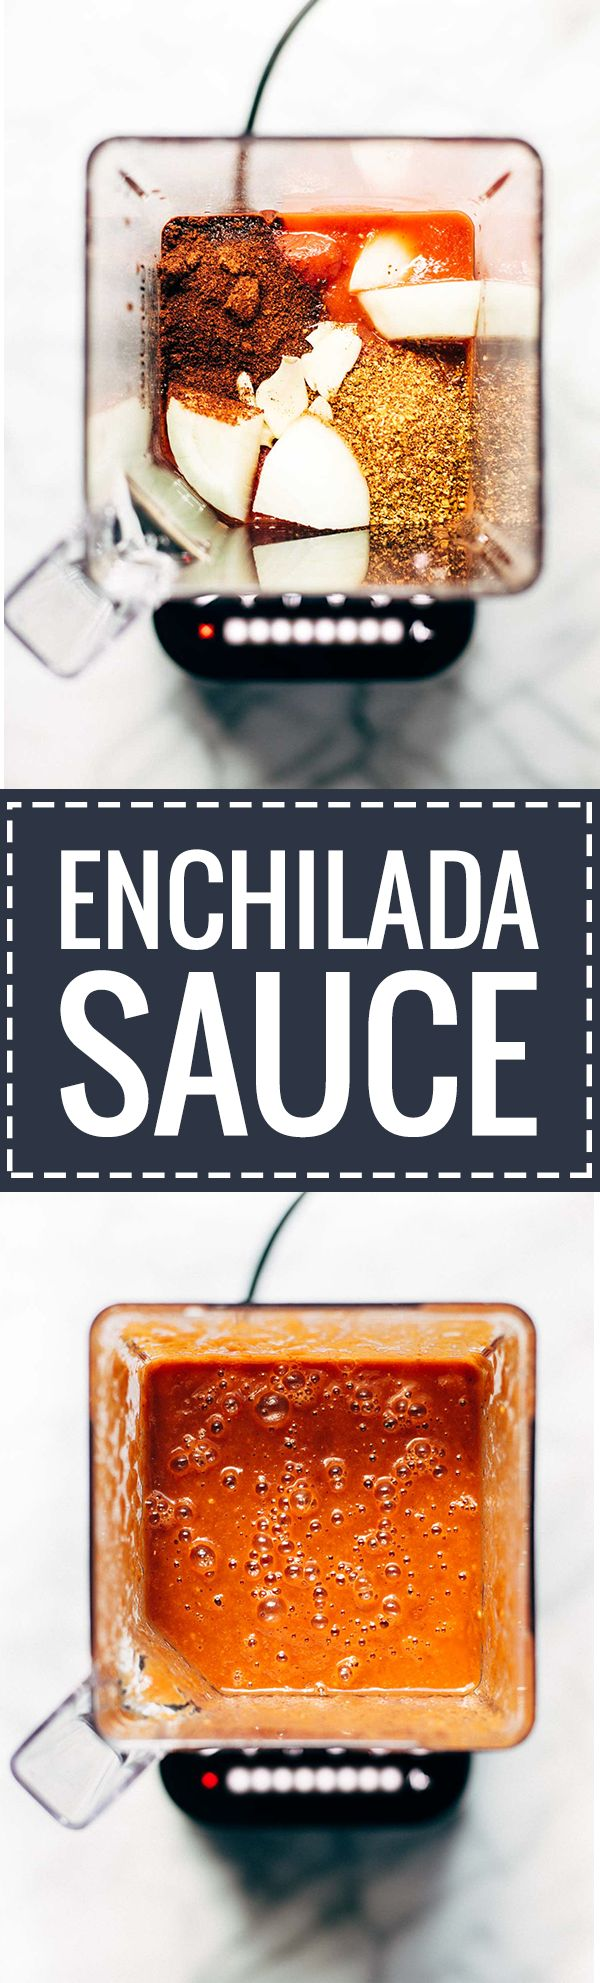 Five Minute Blender Enchilada Sauce - 6 ingredients // 5 minutes. A super healthy alternative to canned enchilada sauce! | pinchofyum.com